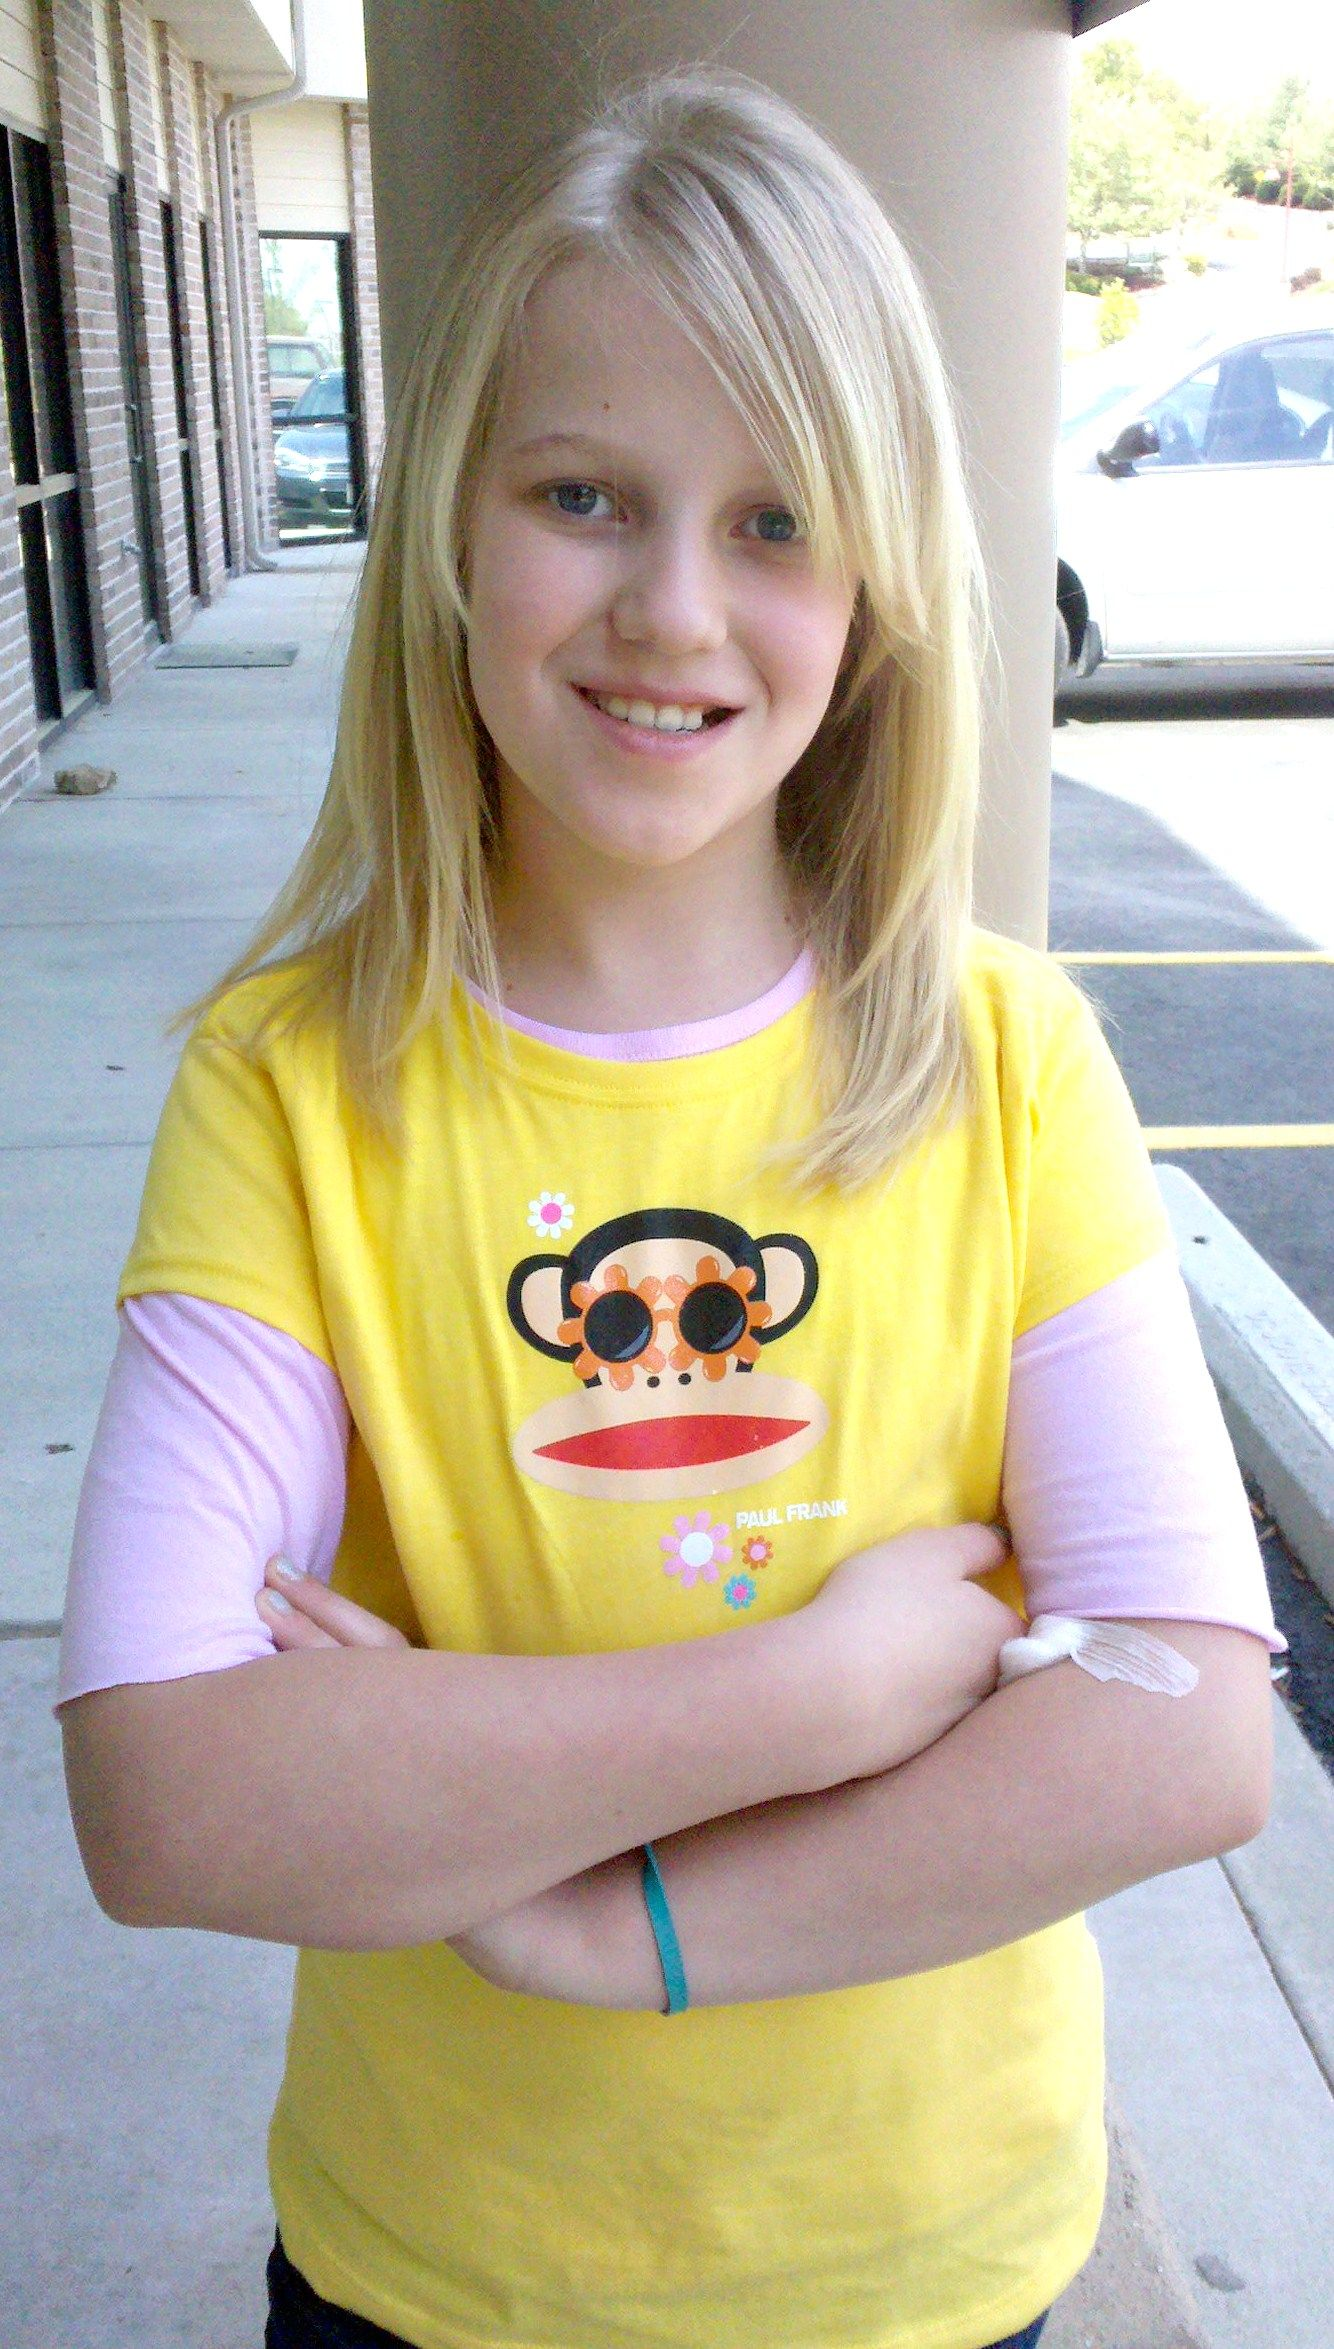 images of haircuts for 10 year old girl - Google Search - Images Of Haircuts For 10 Year Old Girl - Google Search Vision